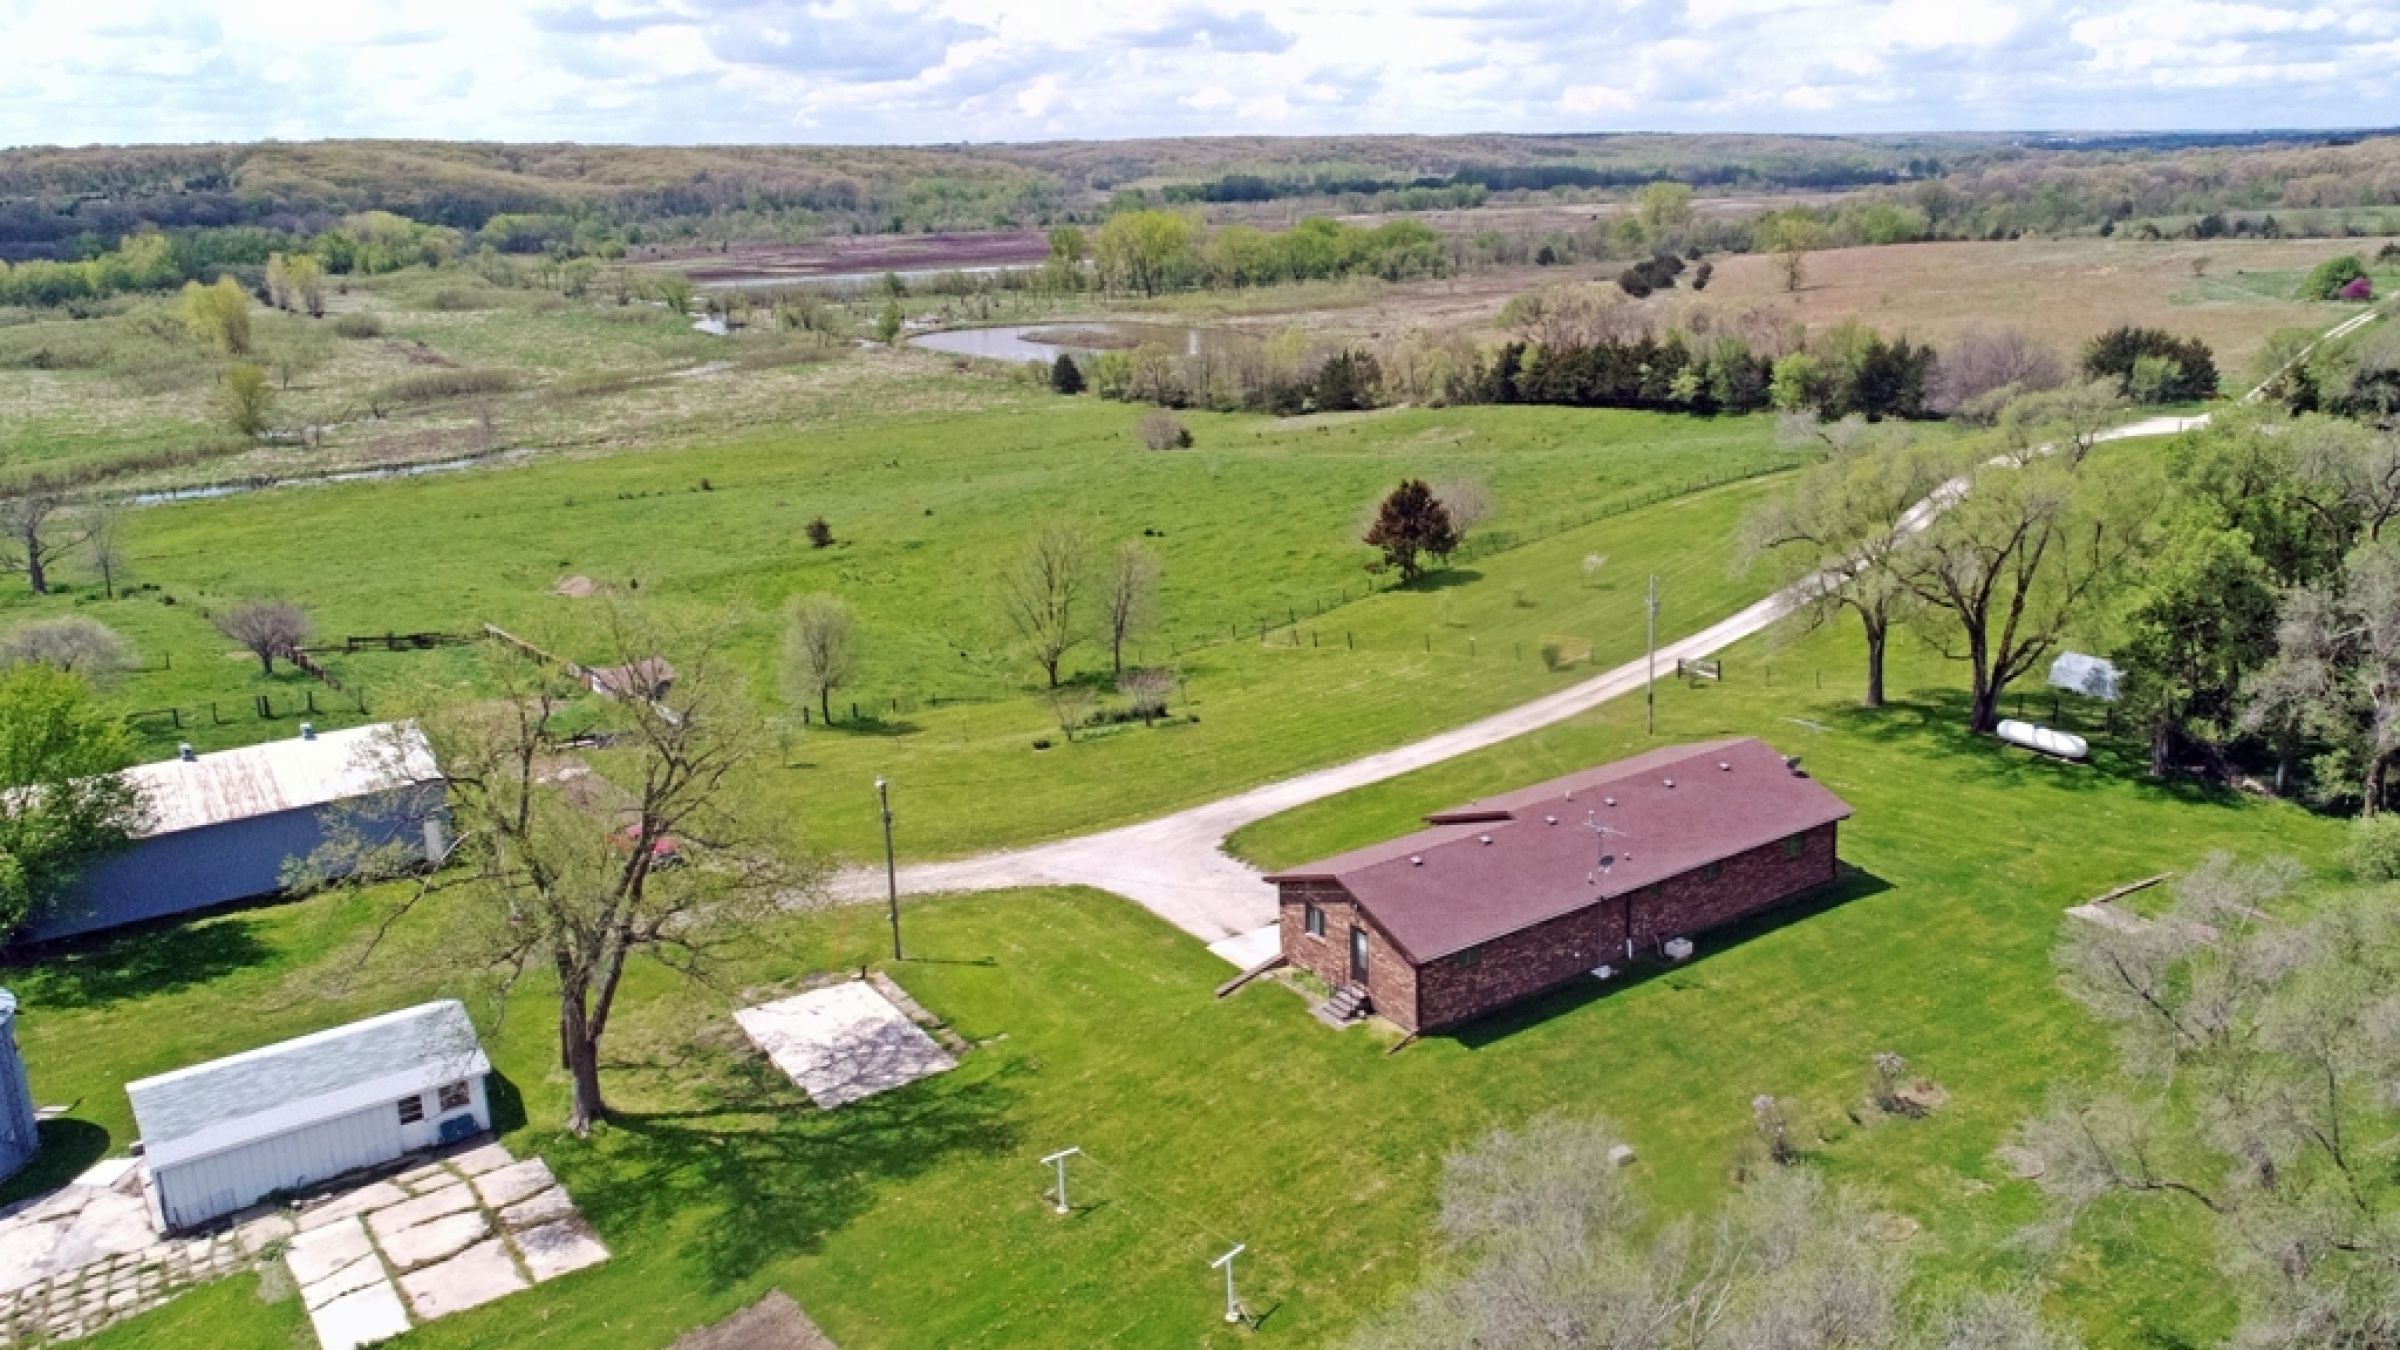 residential-lucas-county-iowa-60-acres-listing-number-14939-5-2020-05-07-163349.JPG